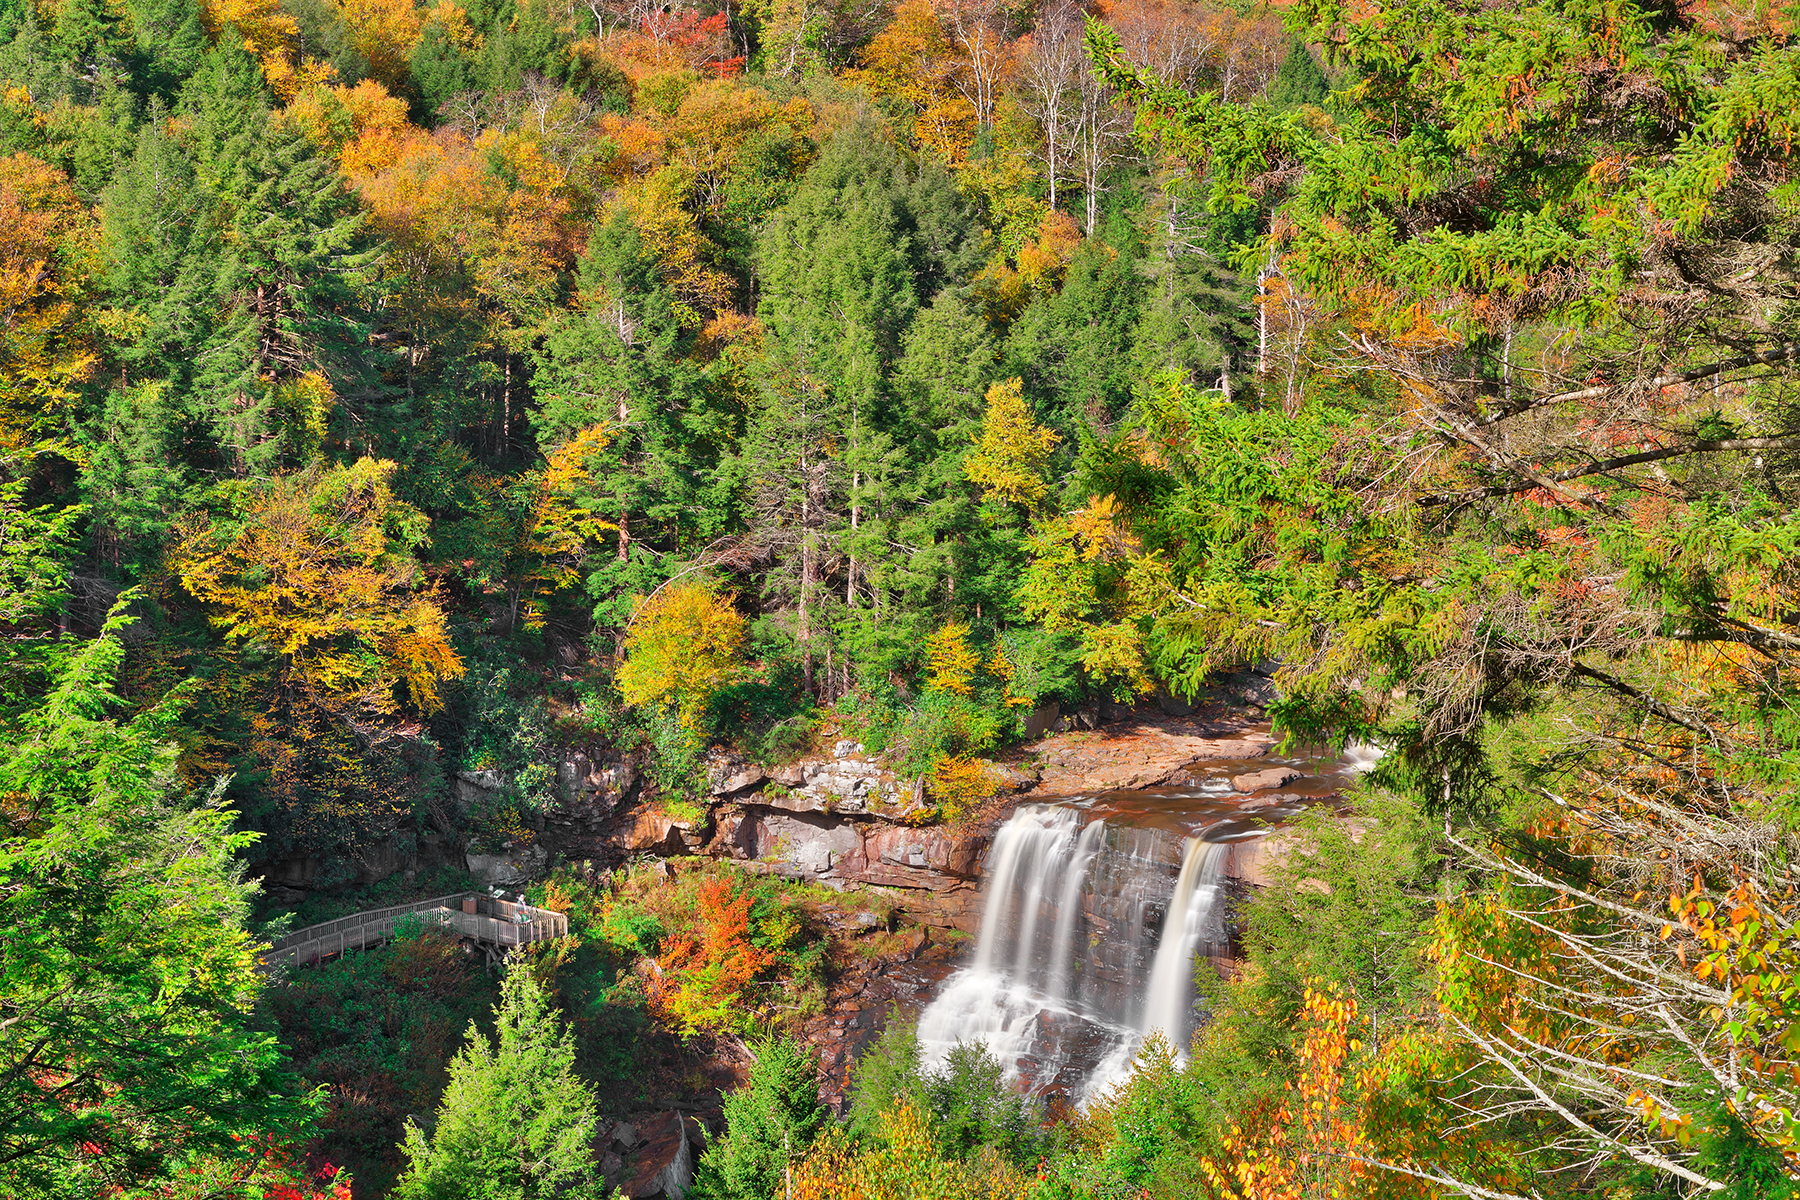 Autumn blackwater falls overlook - hdr photo